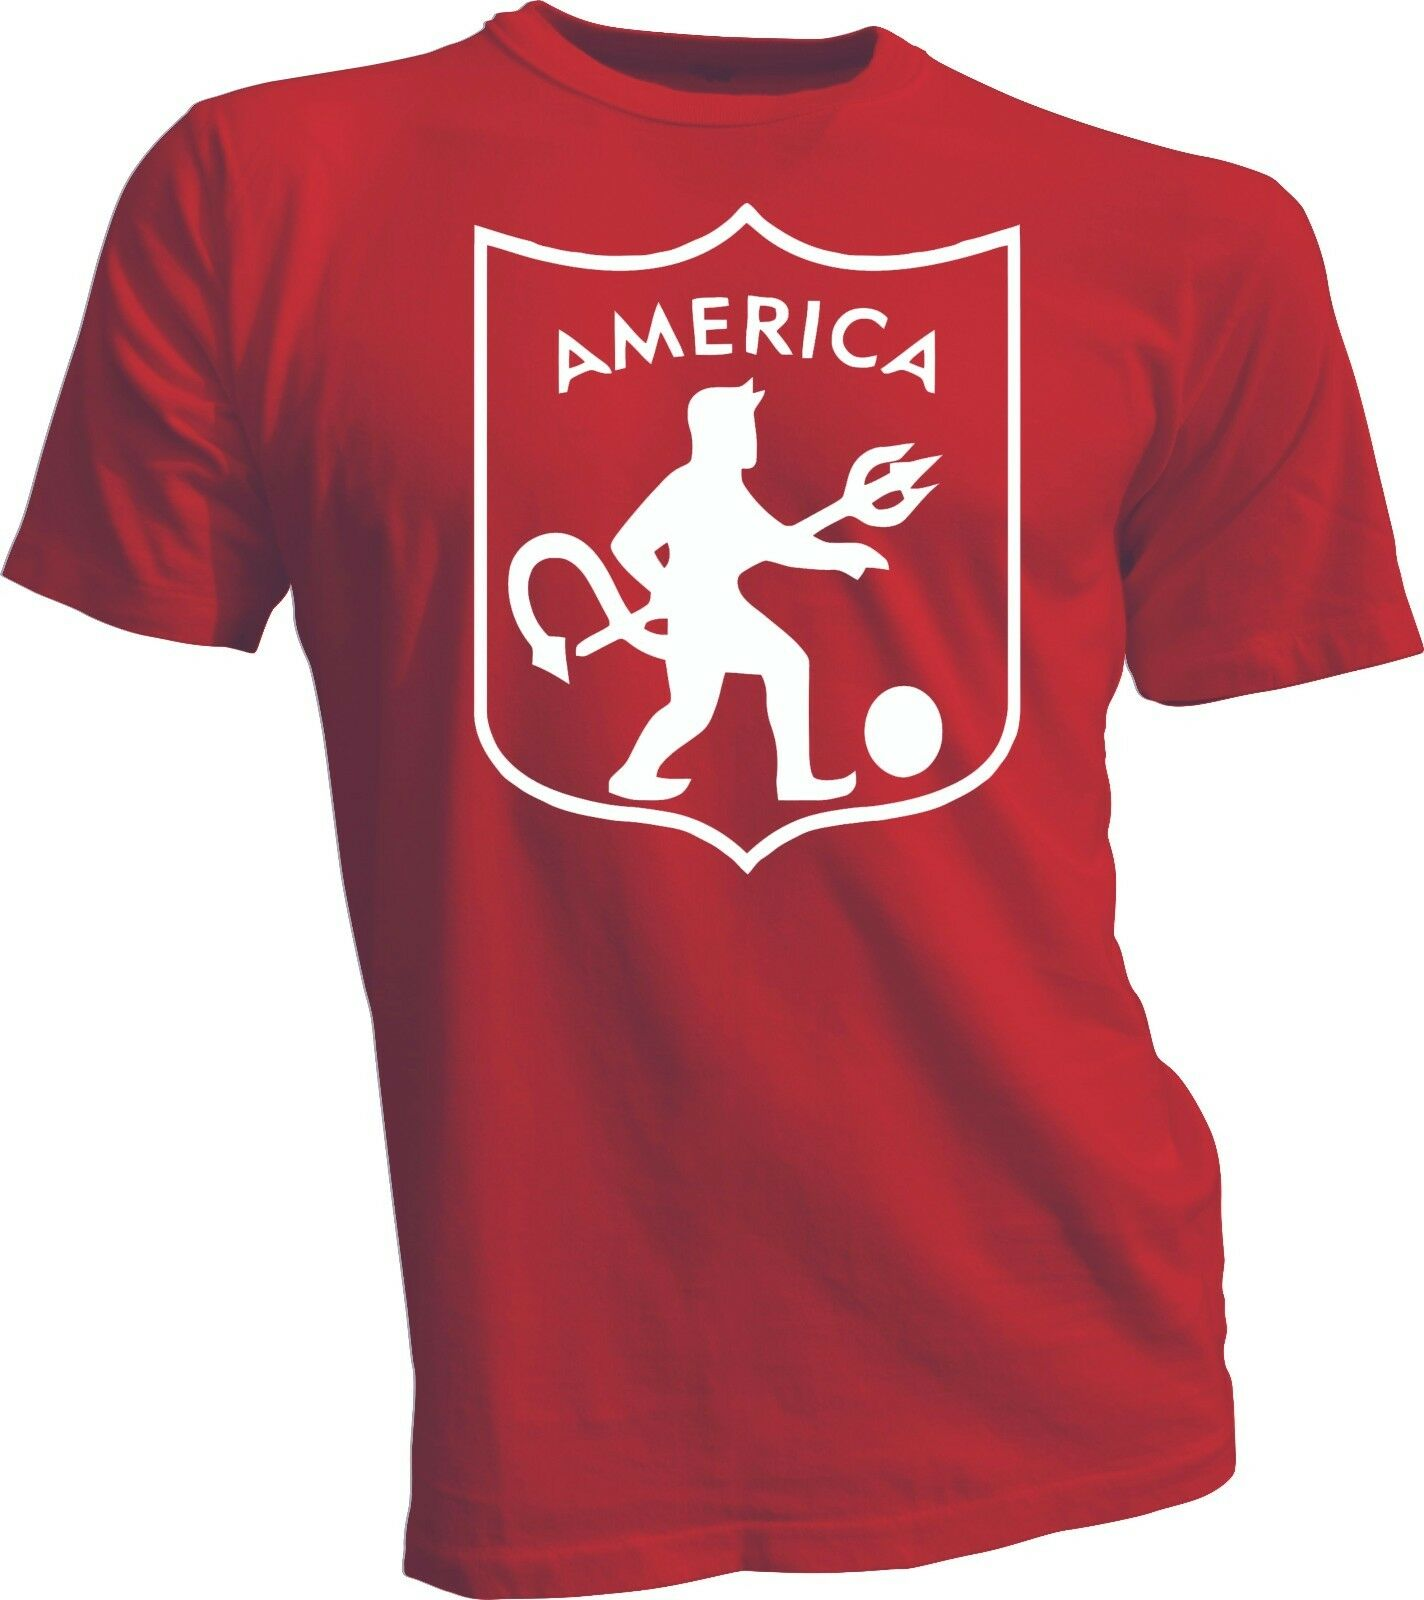 more photos 49c7b 45926 US $12.44 50% OFF|America de Cali Colombia Futbol Soccer Camiseta T Shirt  handmade jersey red-in T-Shirts from Men's Clothing on Aliexpress.com | ...